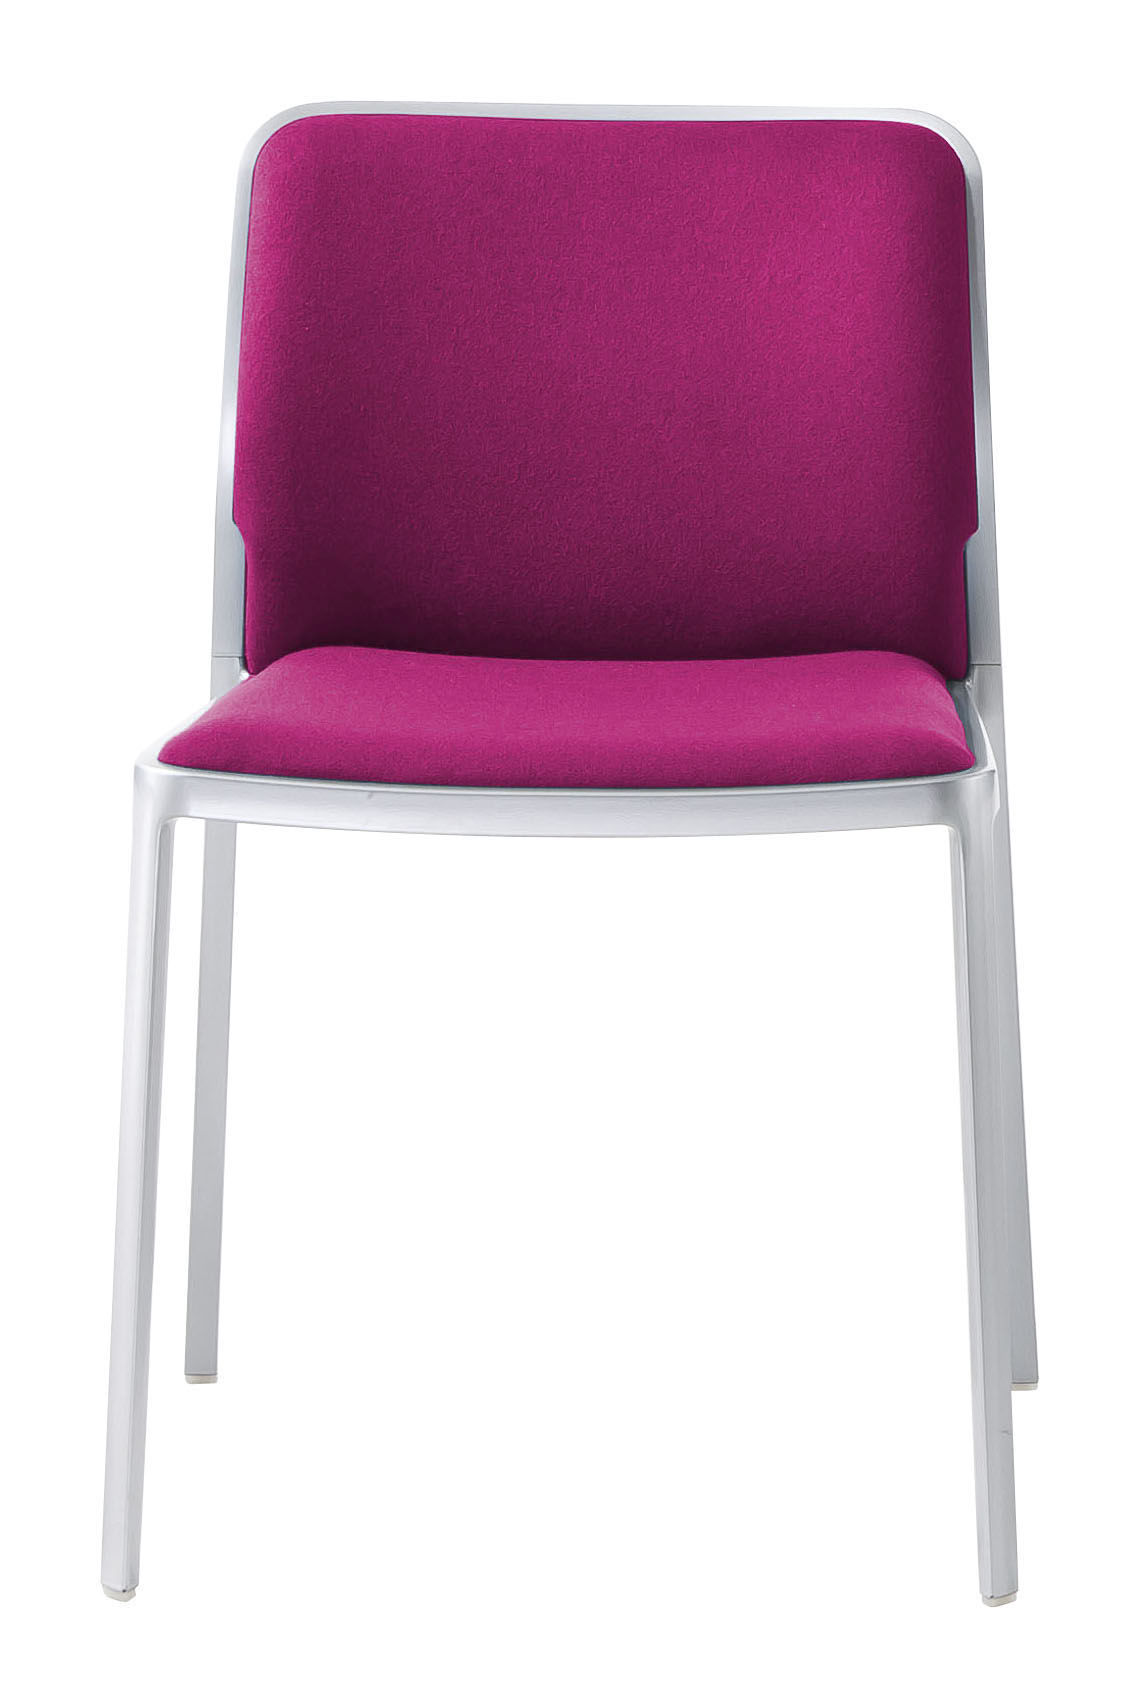 Audrey Soft chair without arms Aluminium Shiny (2 units packaging) Fabric Trevira